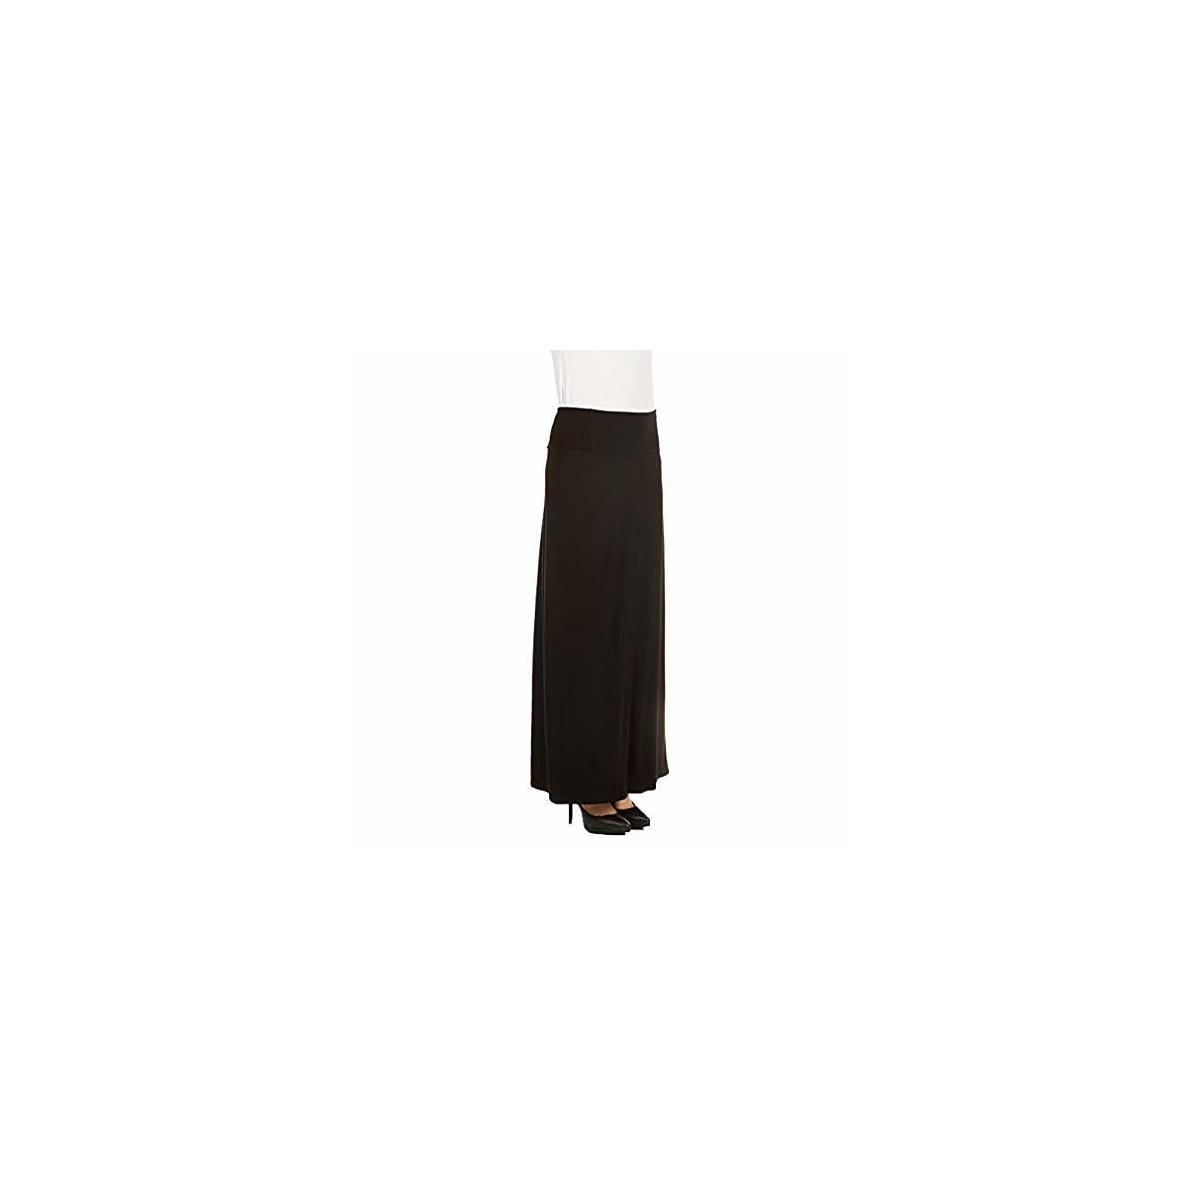 REBATE FOR BLACK, SIZE: 3X  PLUS SIZE--------X America Maxi Skirt for Women Foldover Long Skirt Junior and Plus Size Skirts for Women